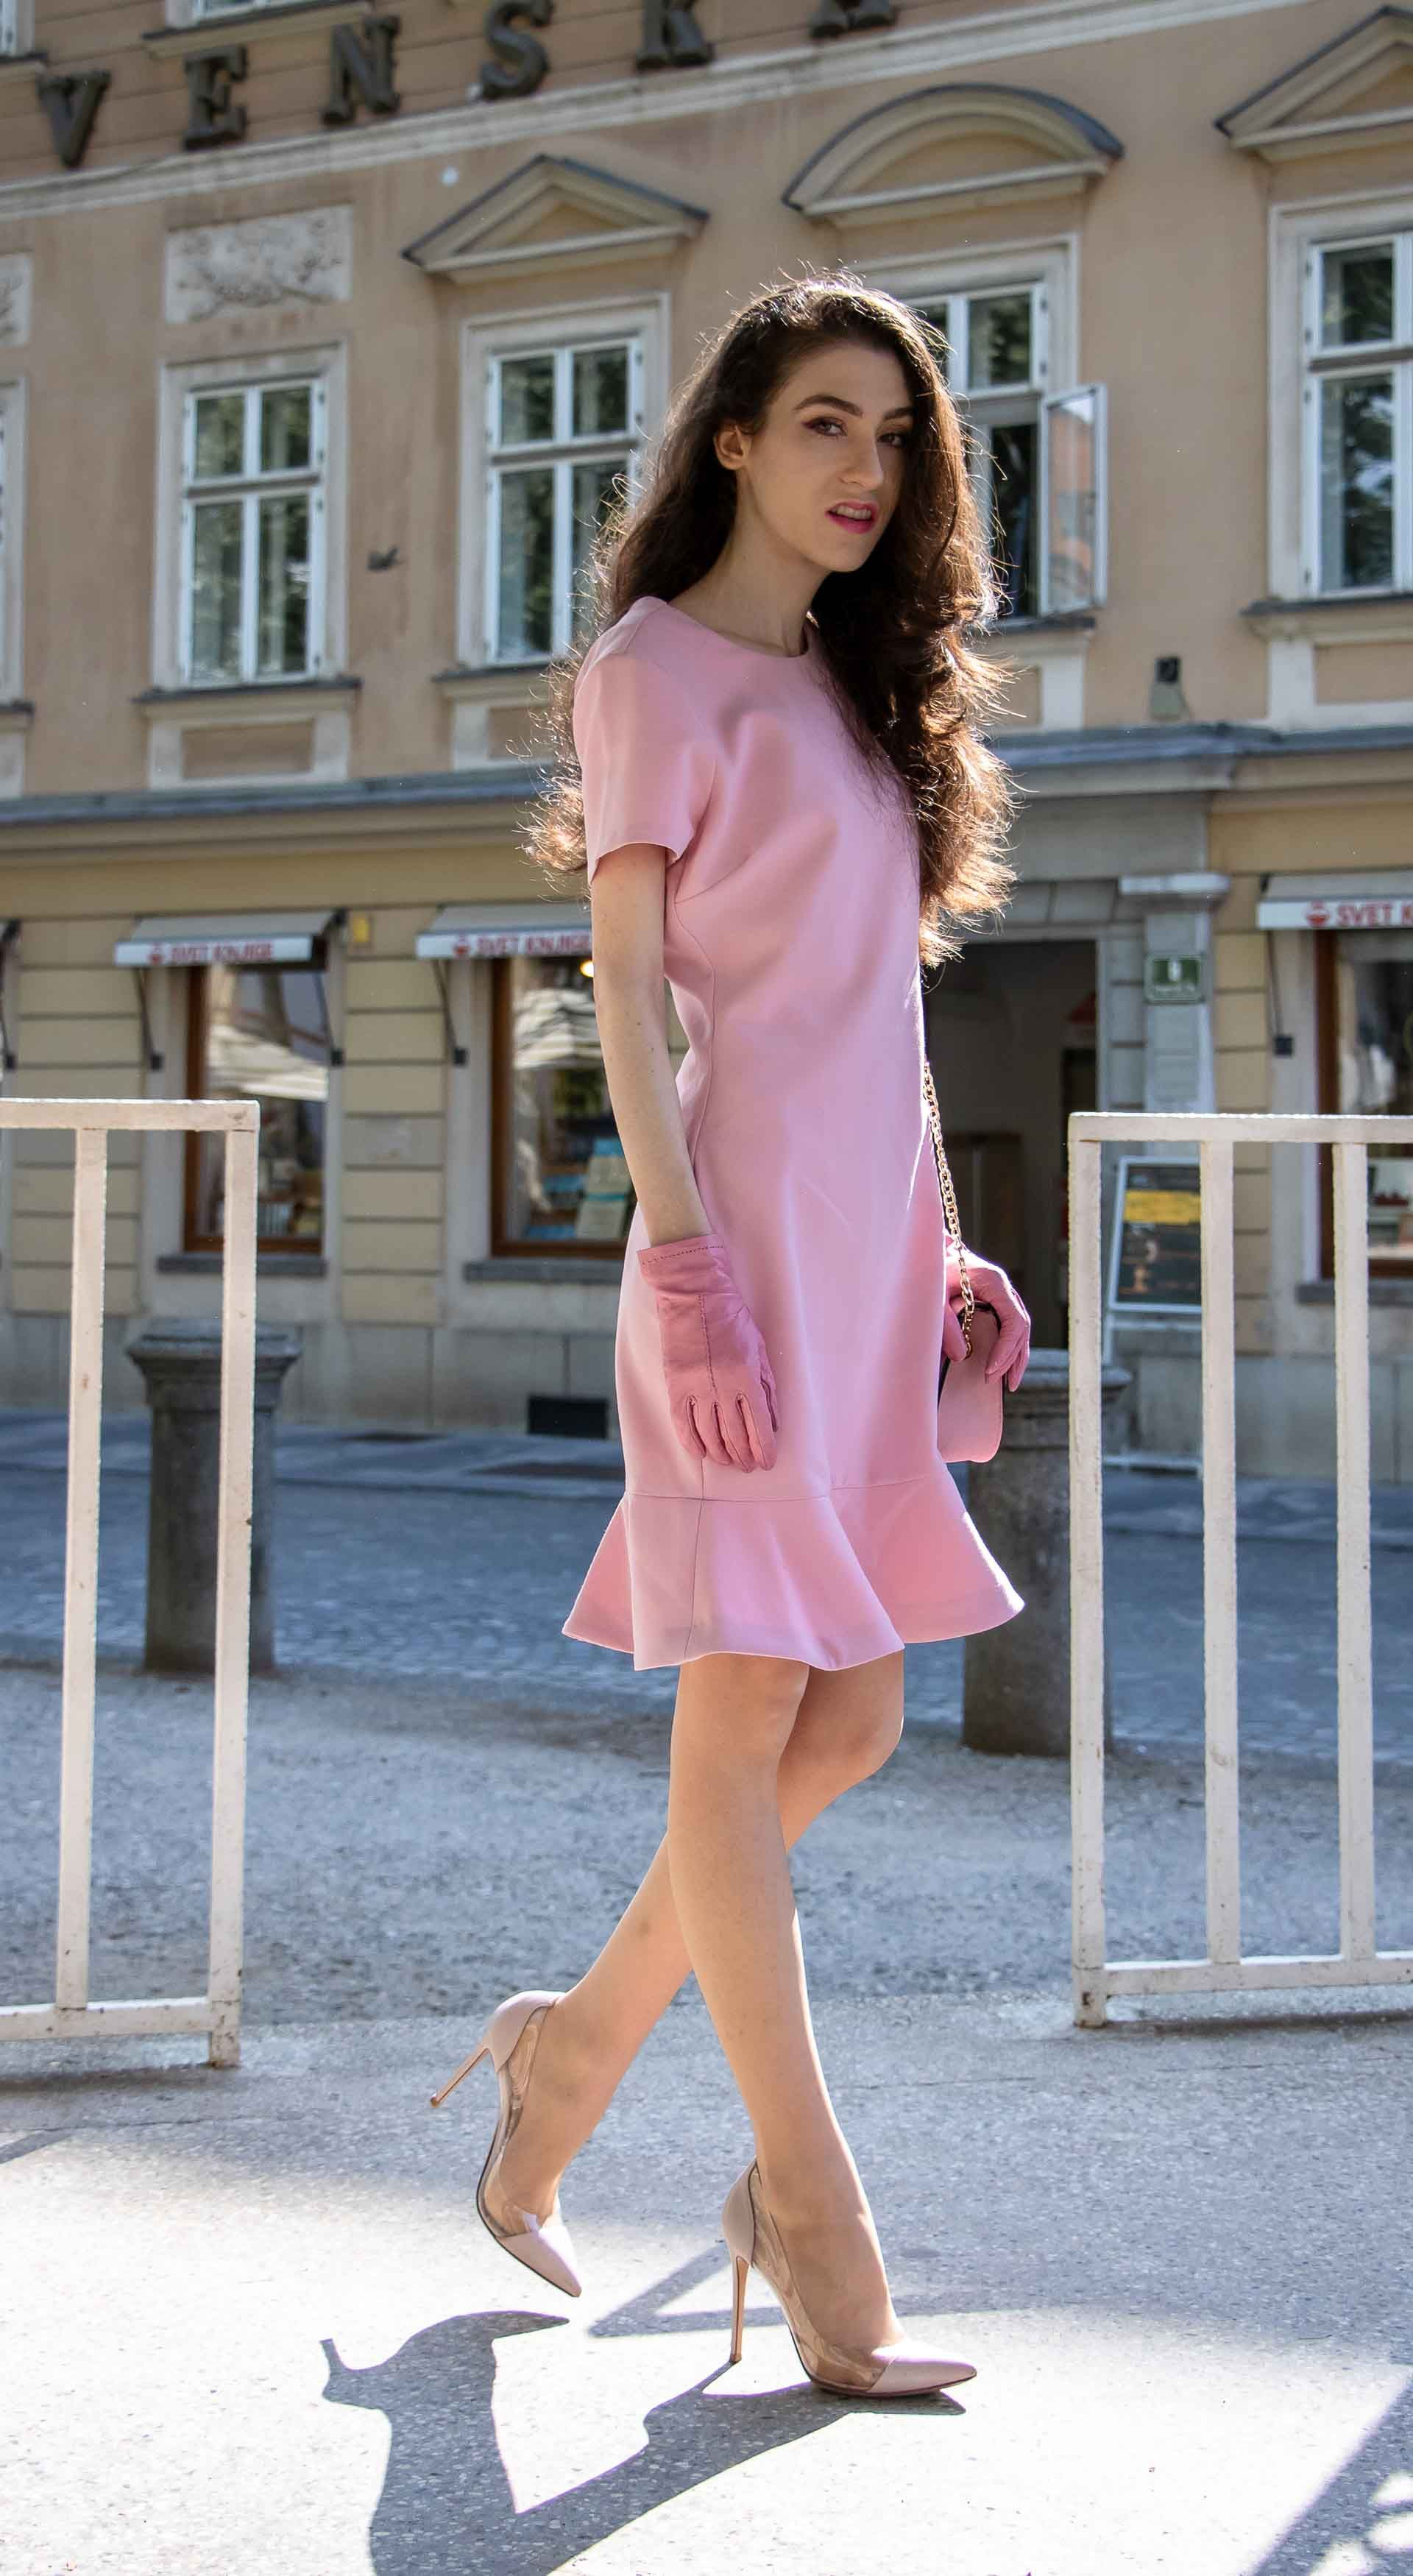 d6a4be4febe0 Fashion Blogger Veronika Lipar of Brunette from Wall Street sharing  mothers-in-law approved